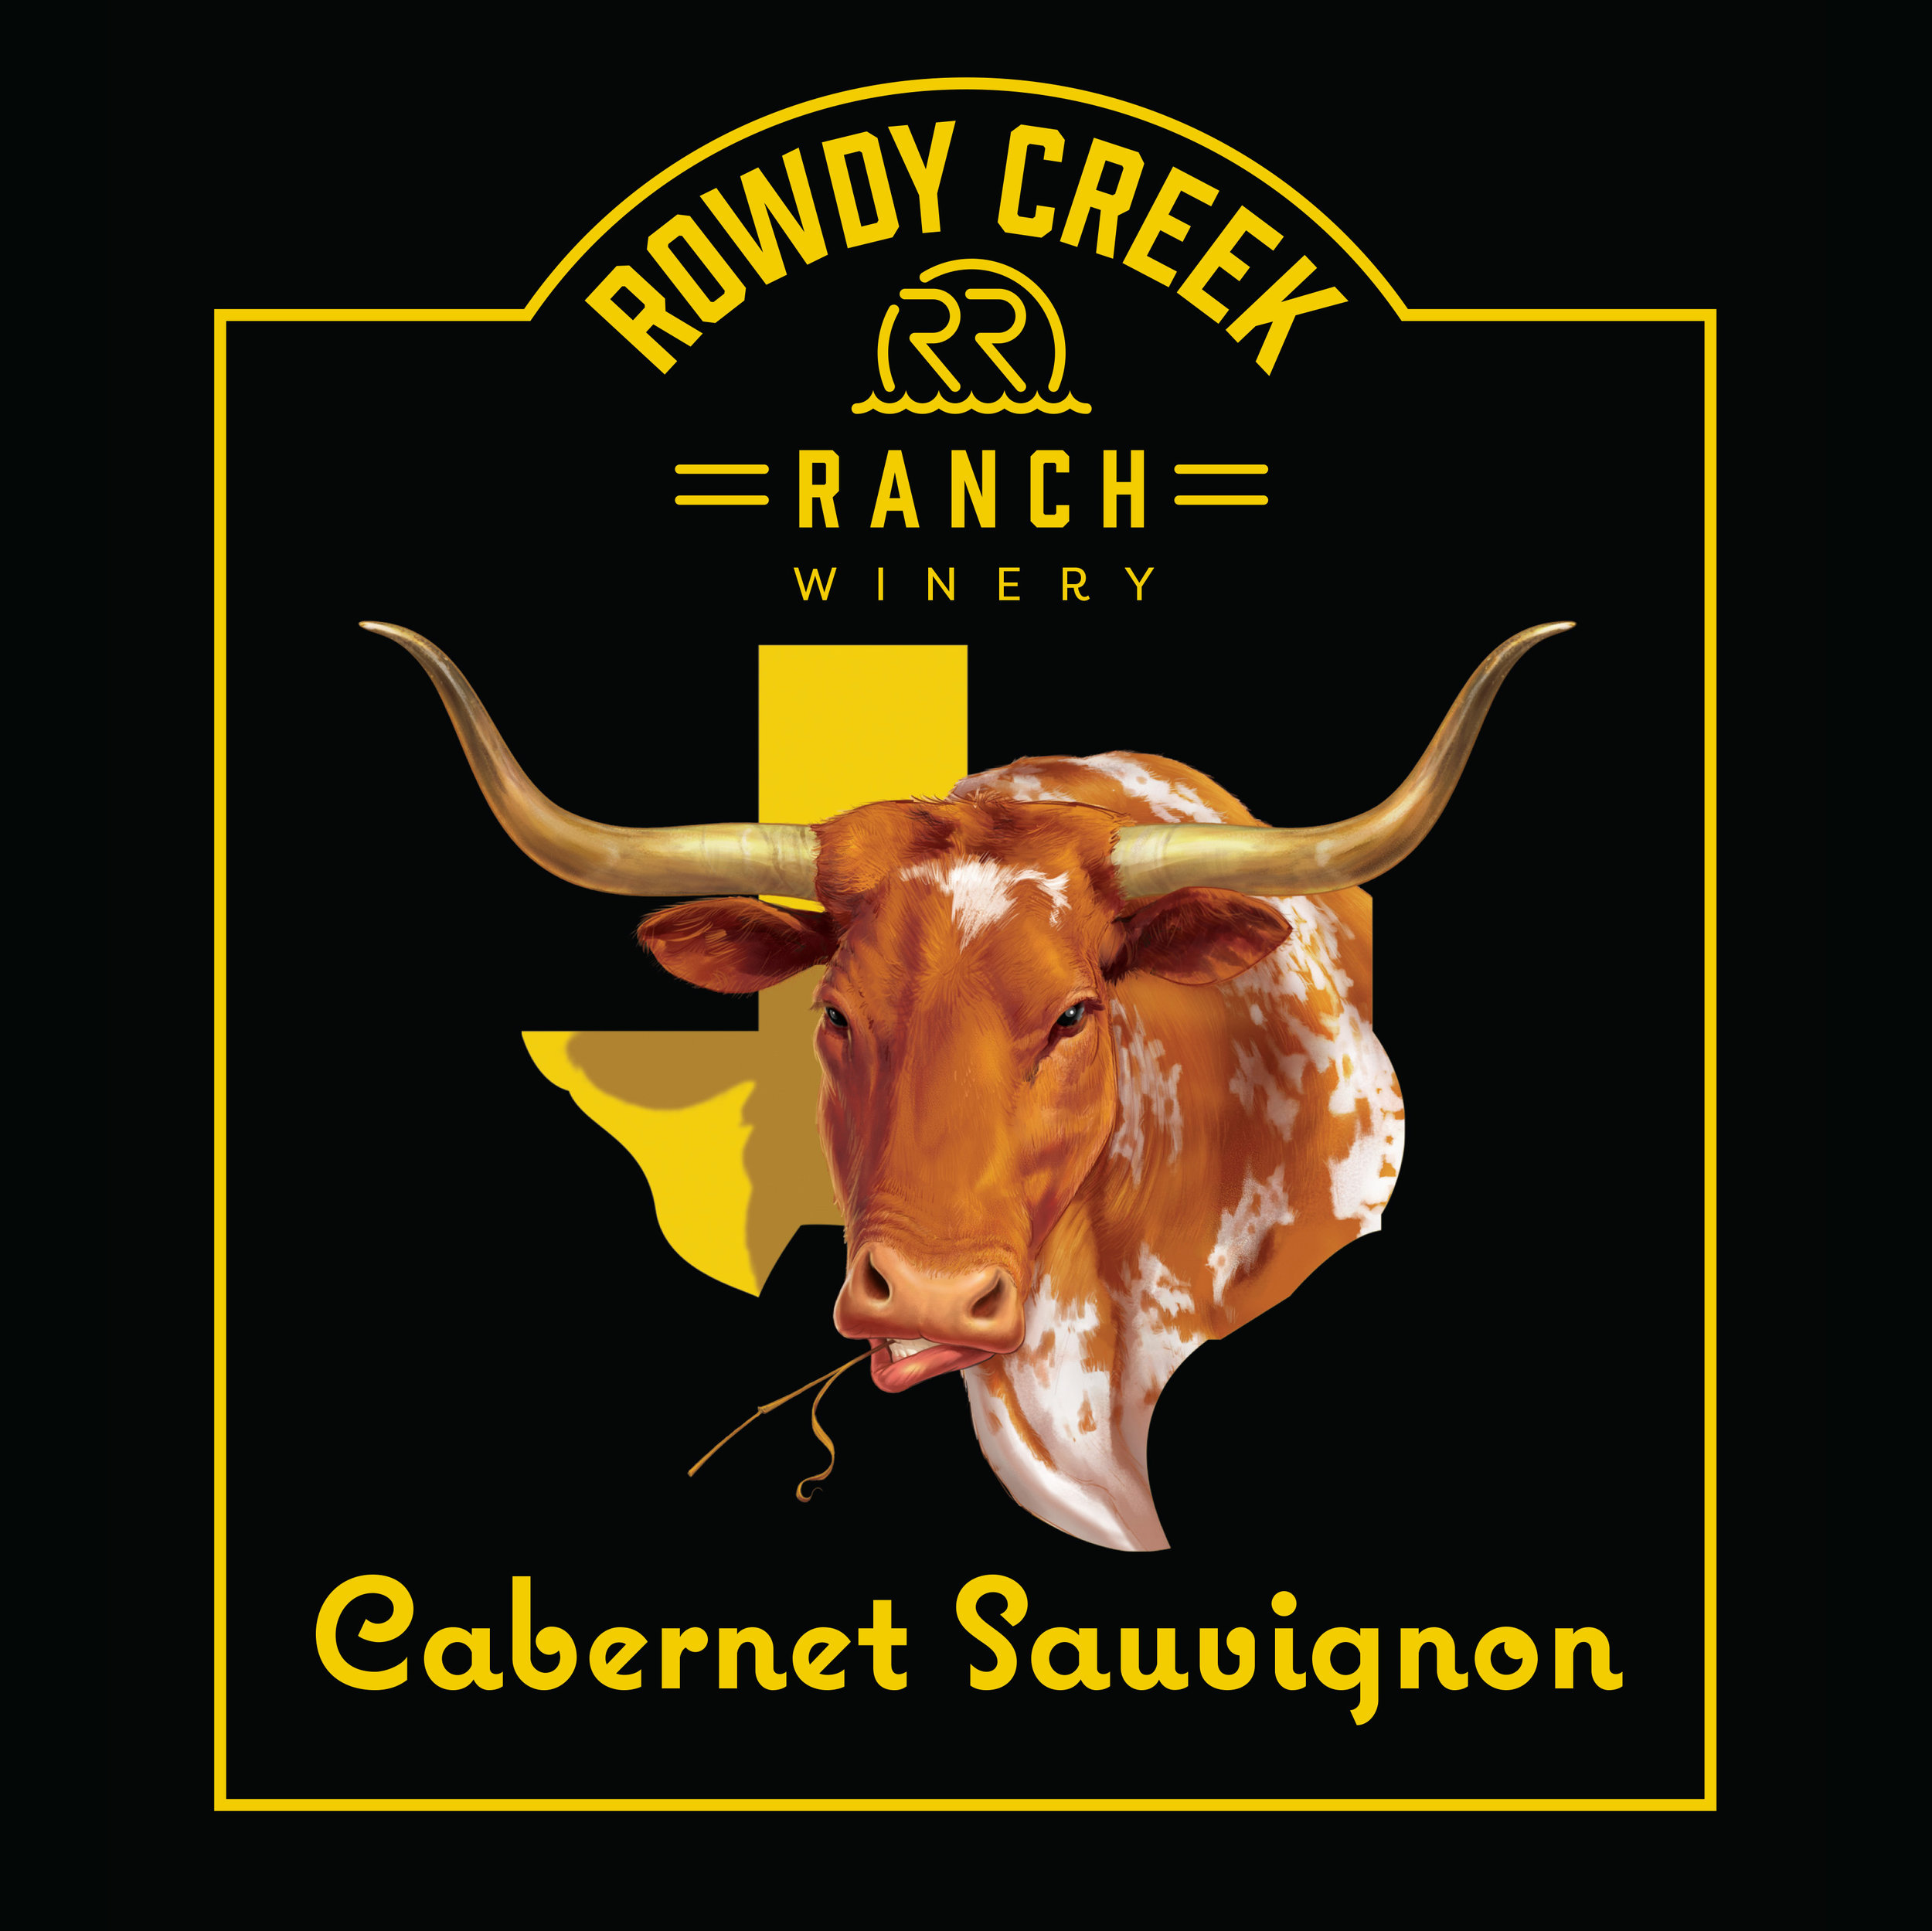 Rowdy Creek Ranch Cabernet Sauvignon Wine Label